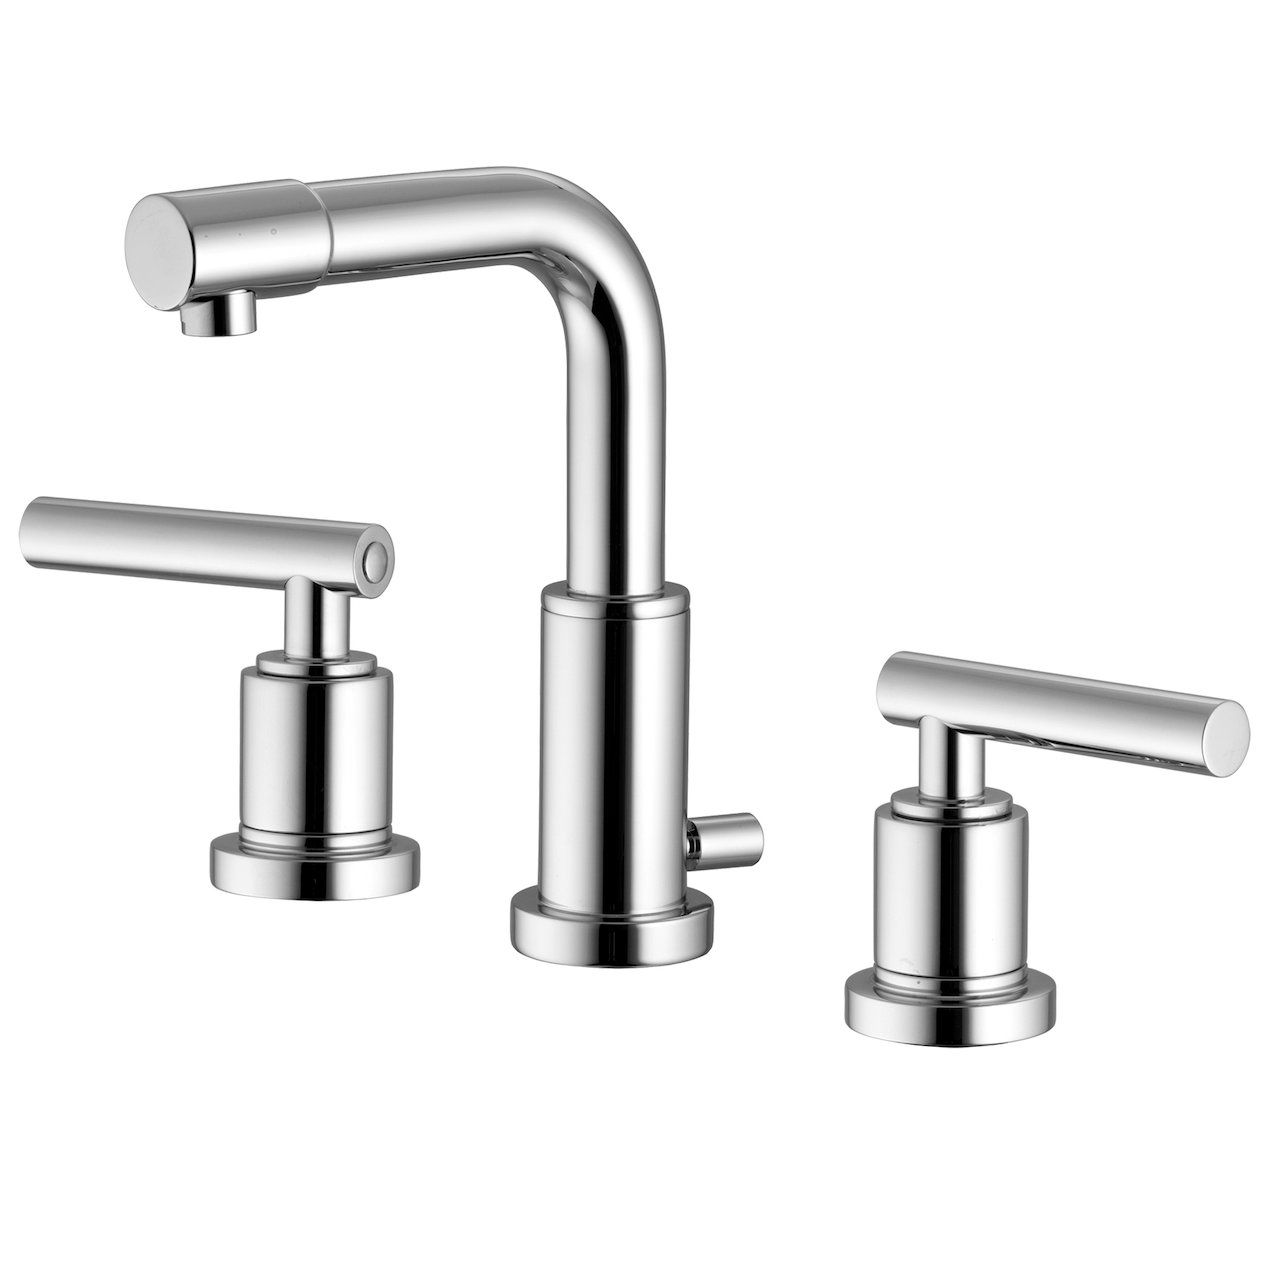 3-hole Basin Mixer Energy